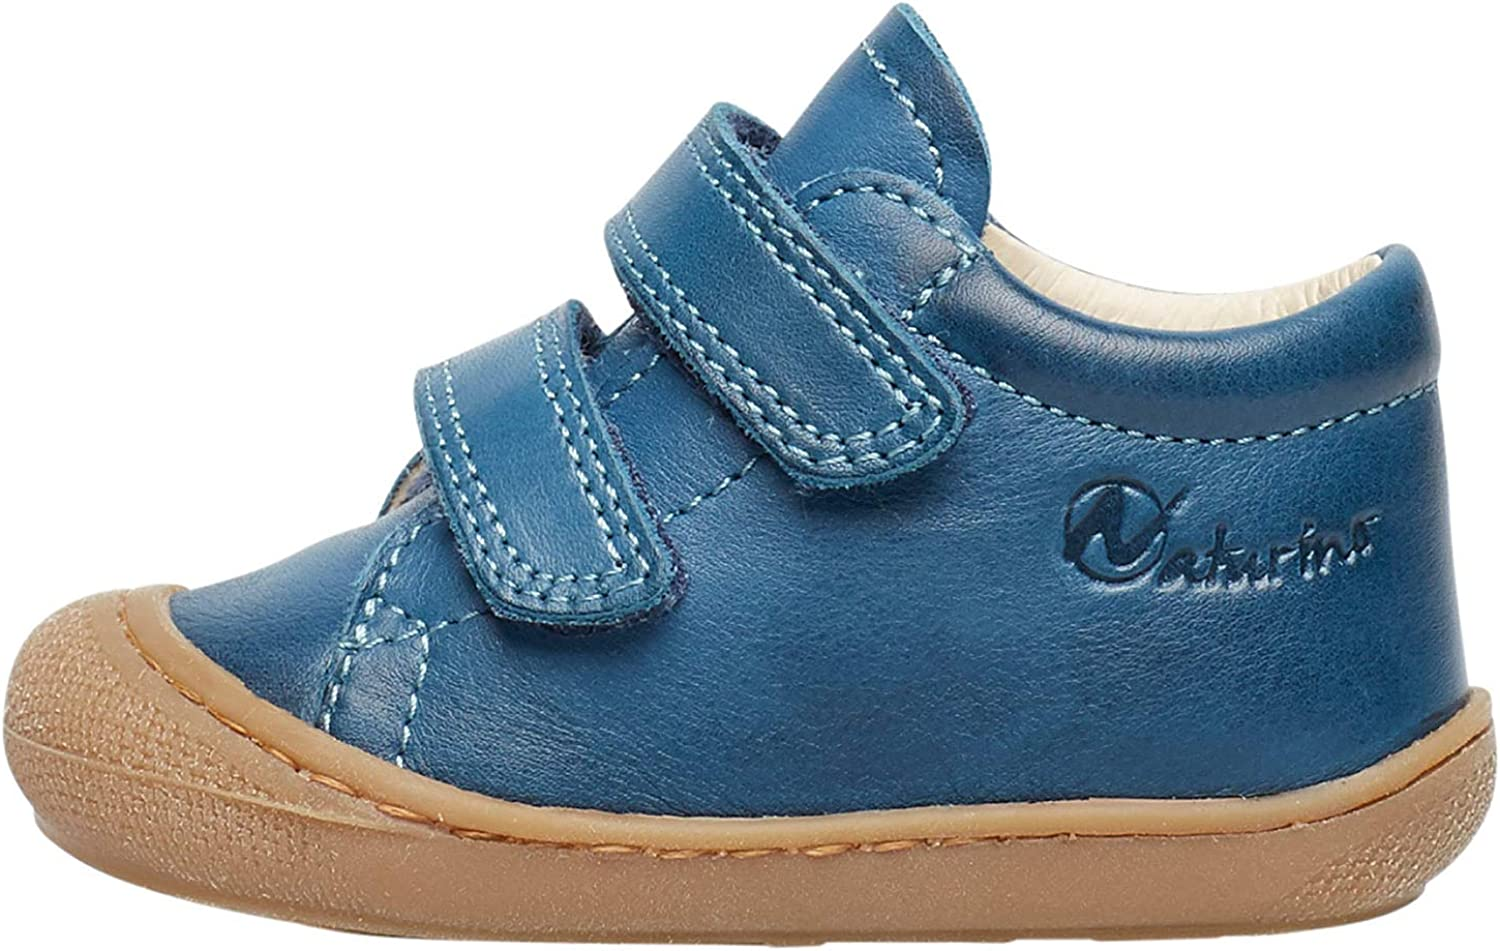 Naturino Baby Tulsa Mall Boy's Cocoon VL AW20 Tod 4.5 US Toddler Spring new work one after another Blue 20